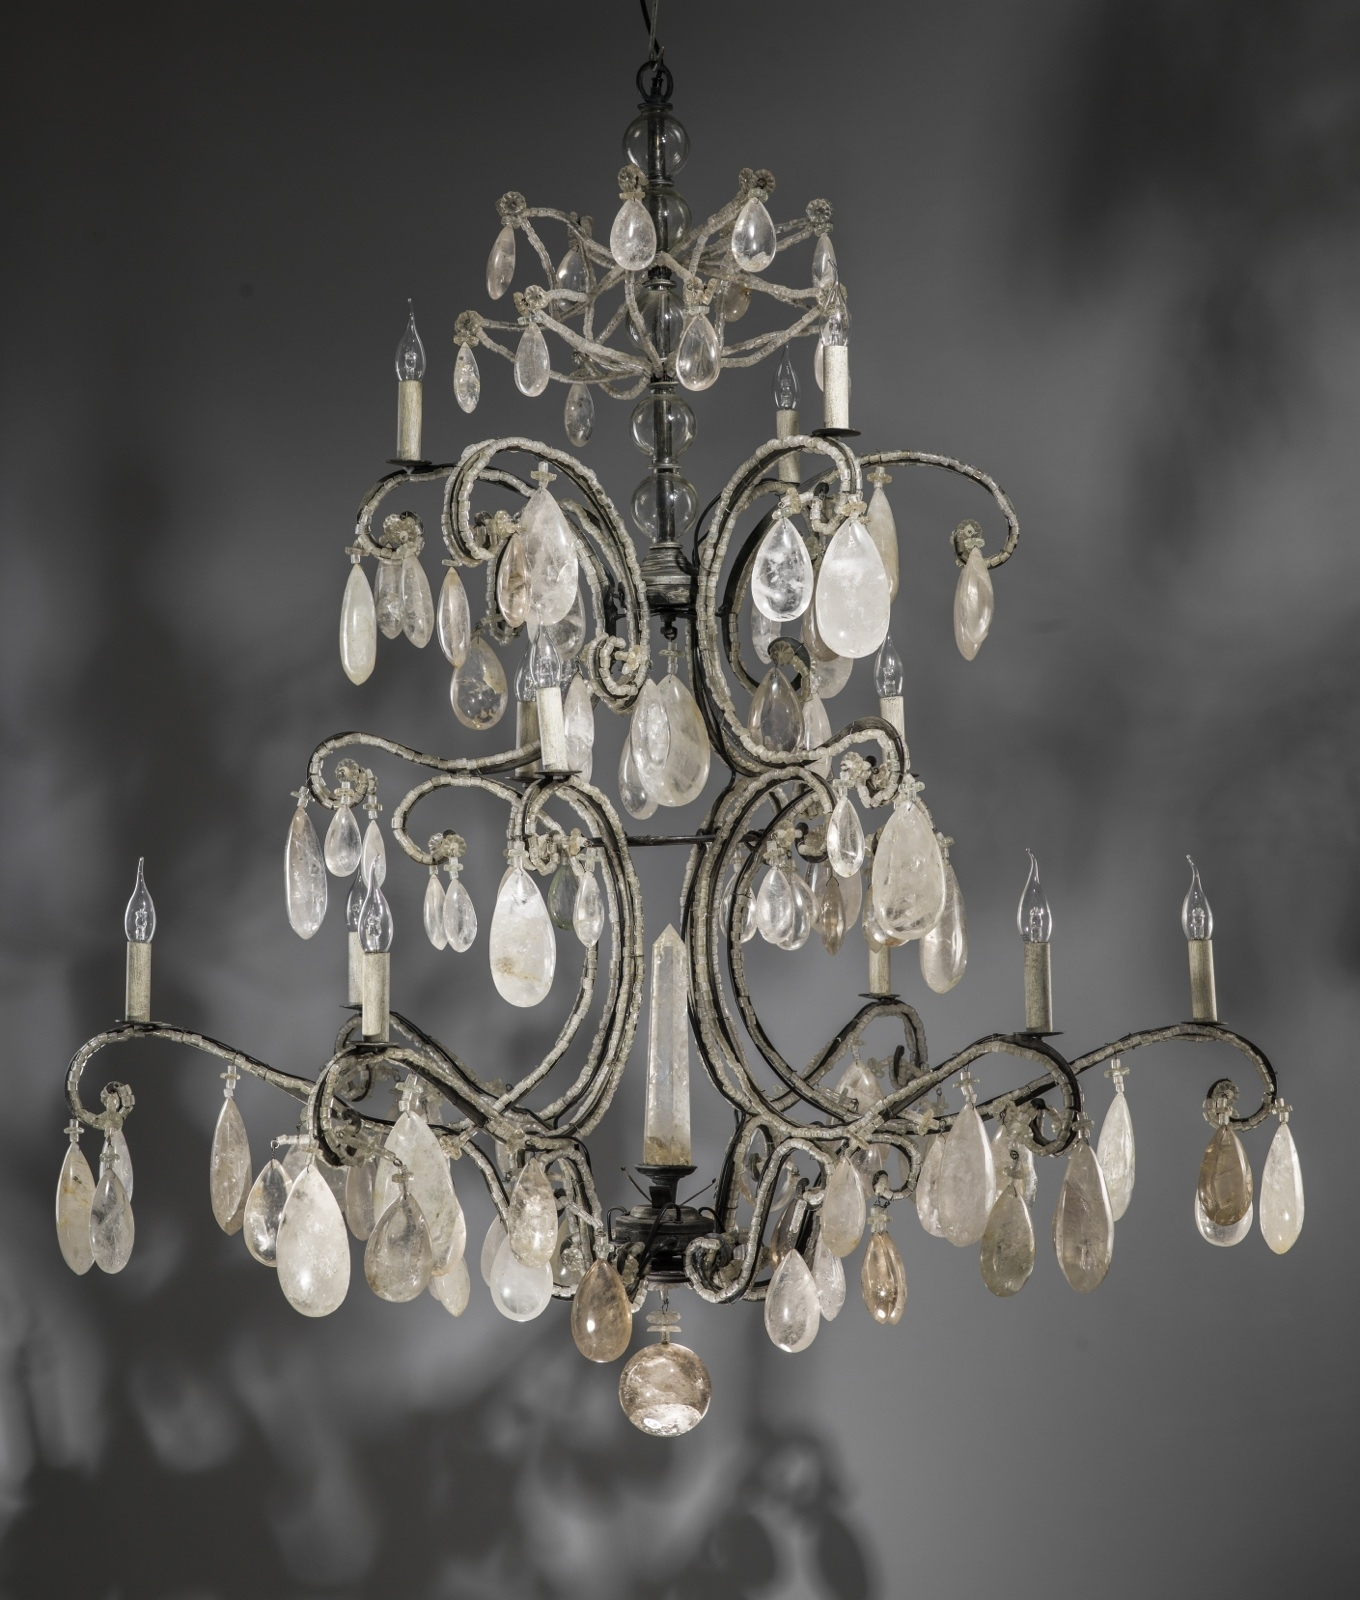 2019 Massive Wrought Iron Rock Crystal Chandelier With 12 Lights (T3435 For Massive Chandelier (View 1 of 20)